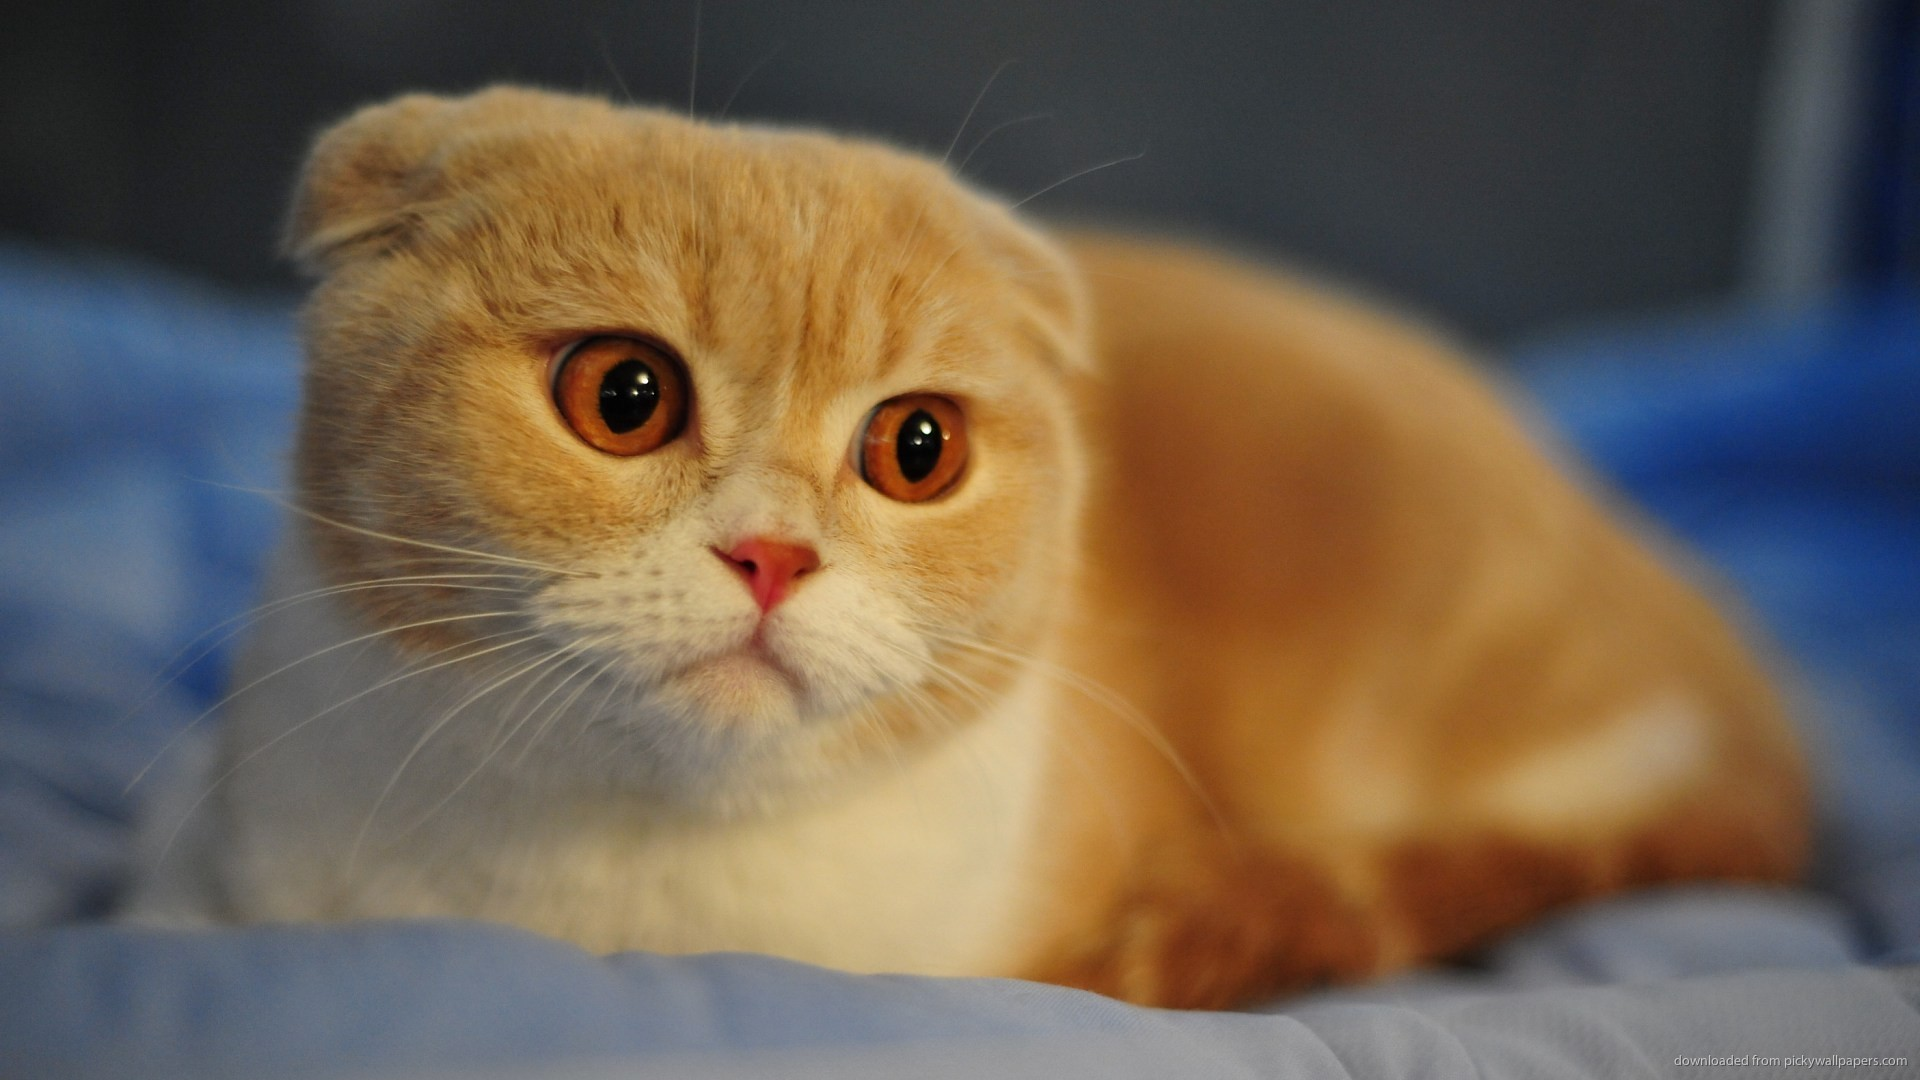 The Scottish Fold has never been accepted in Britain's cat registry